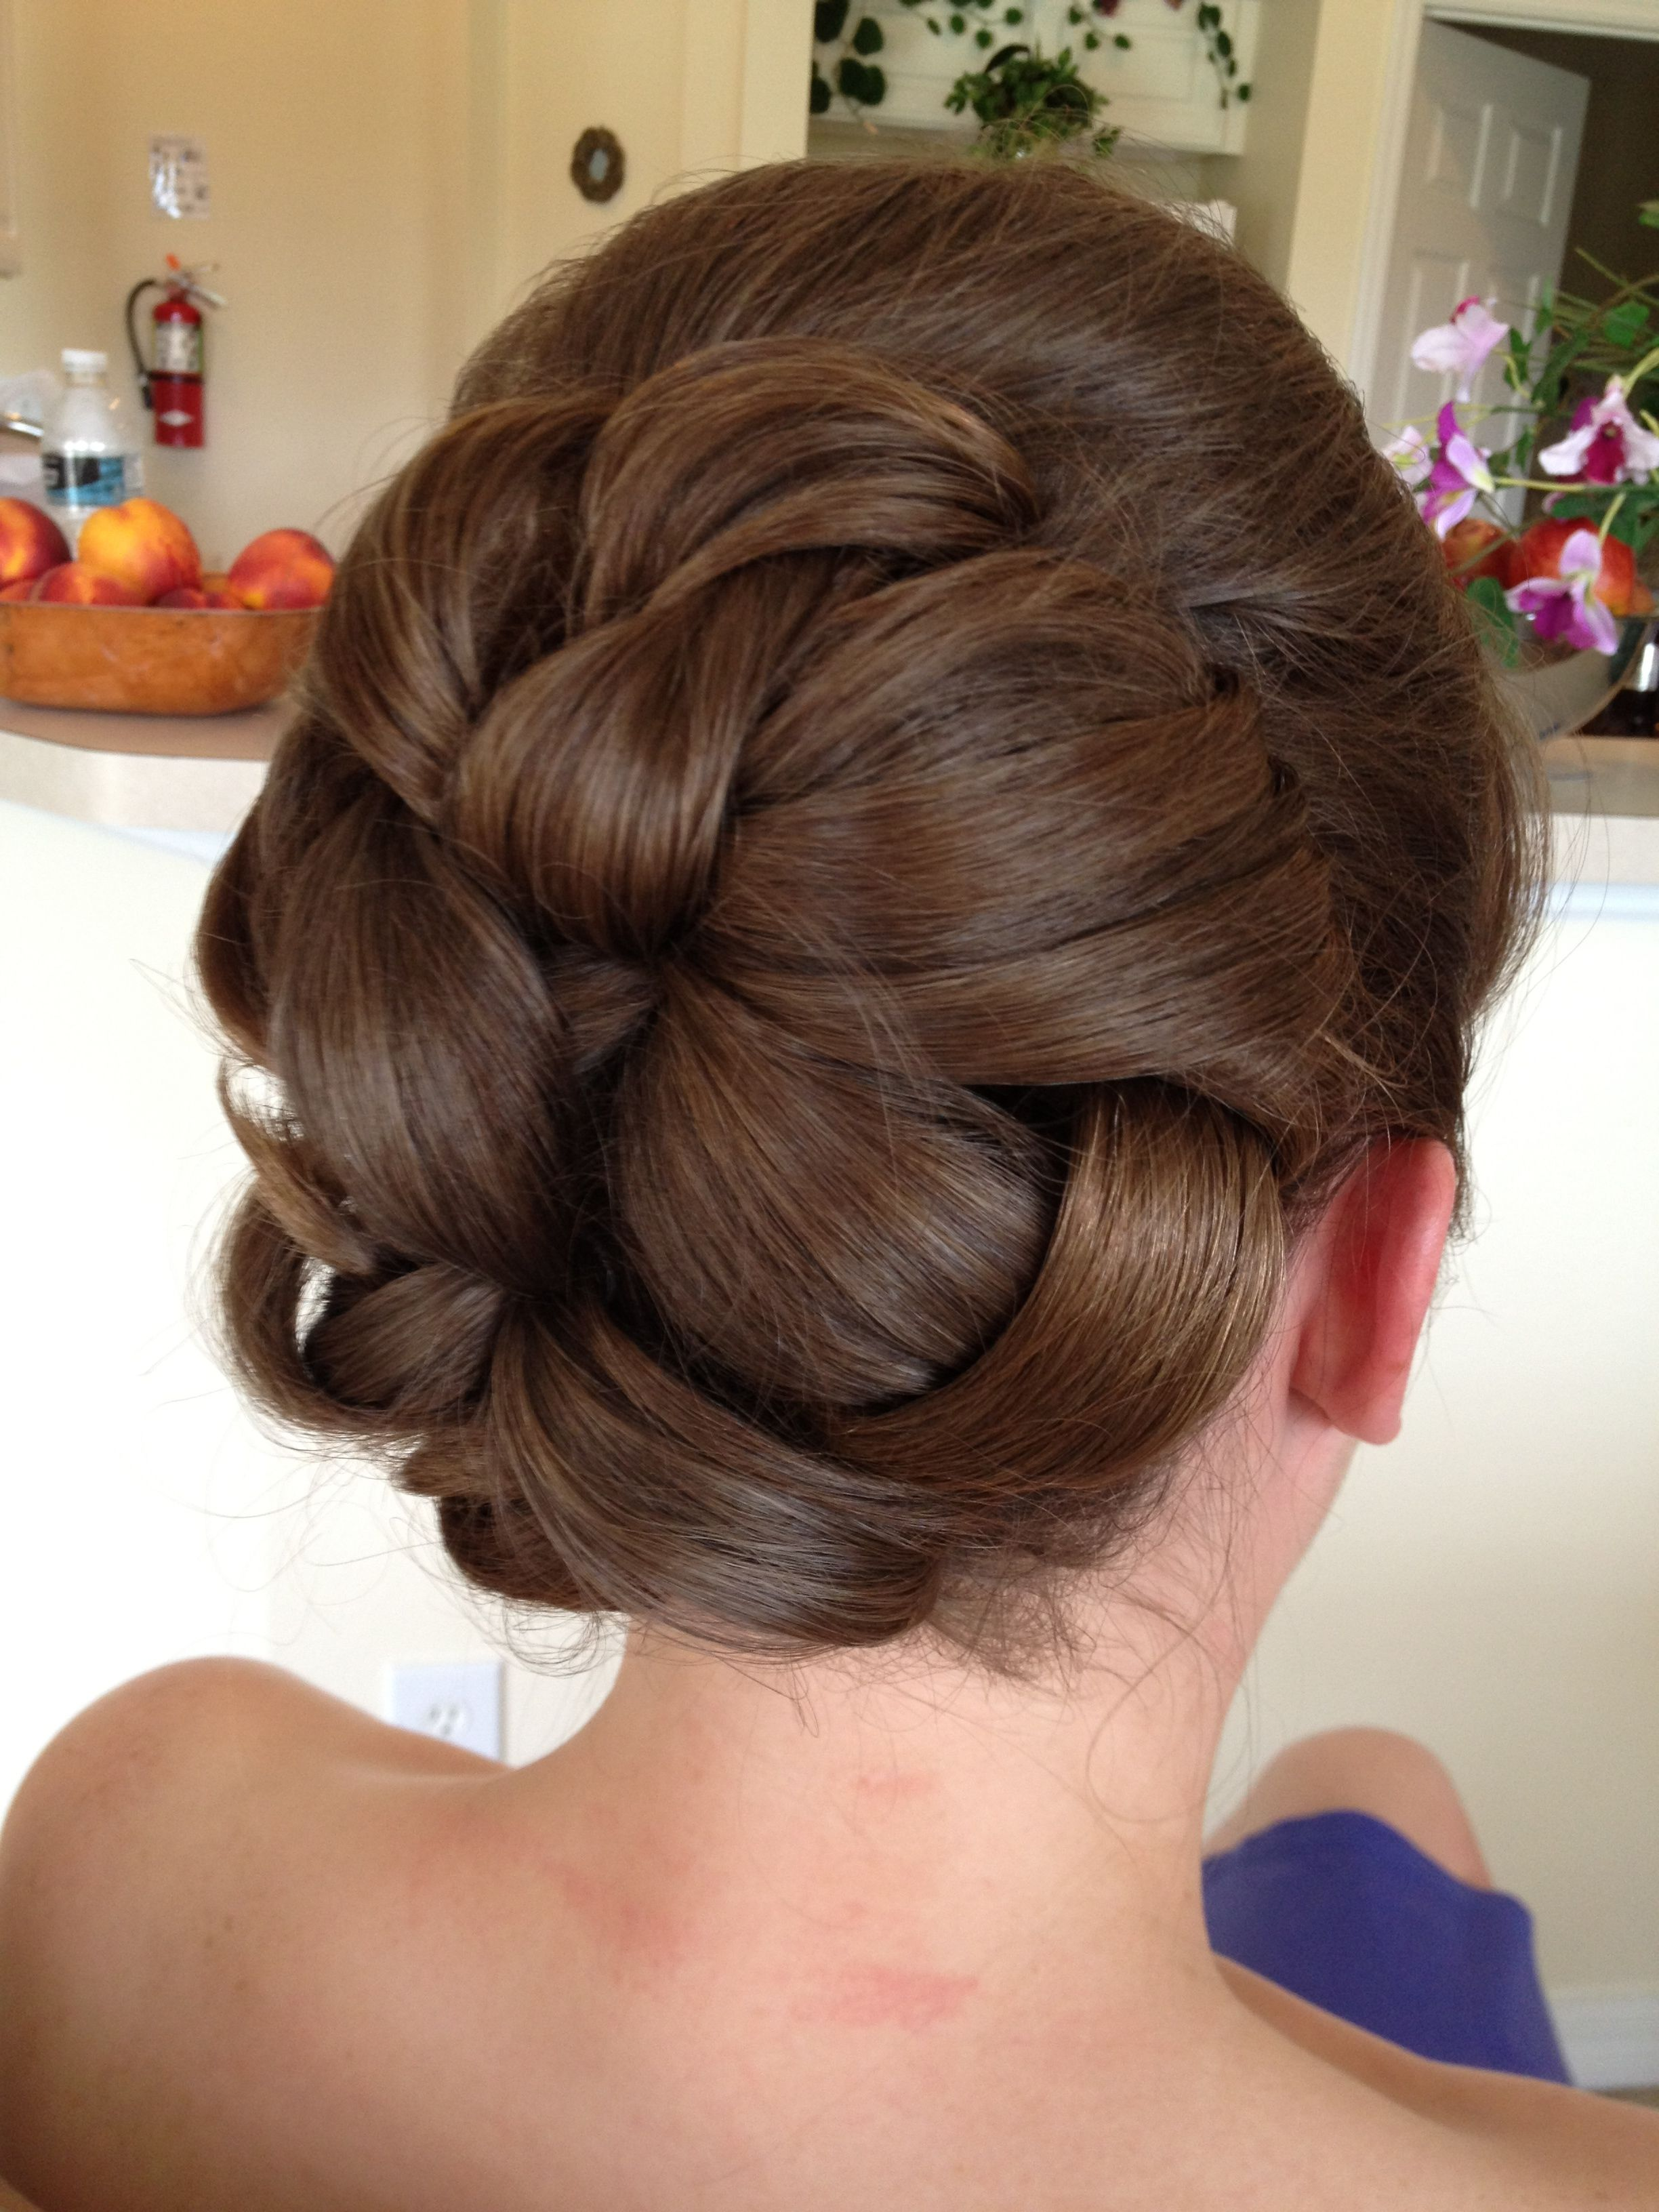 wedding hair - large barrel style curls in the back with a bump by